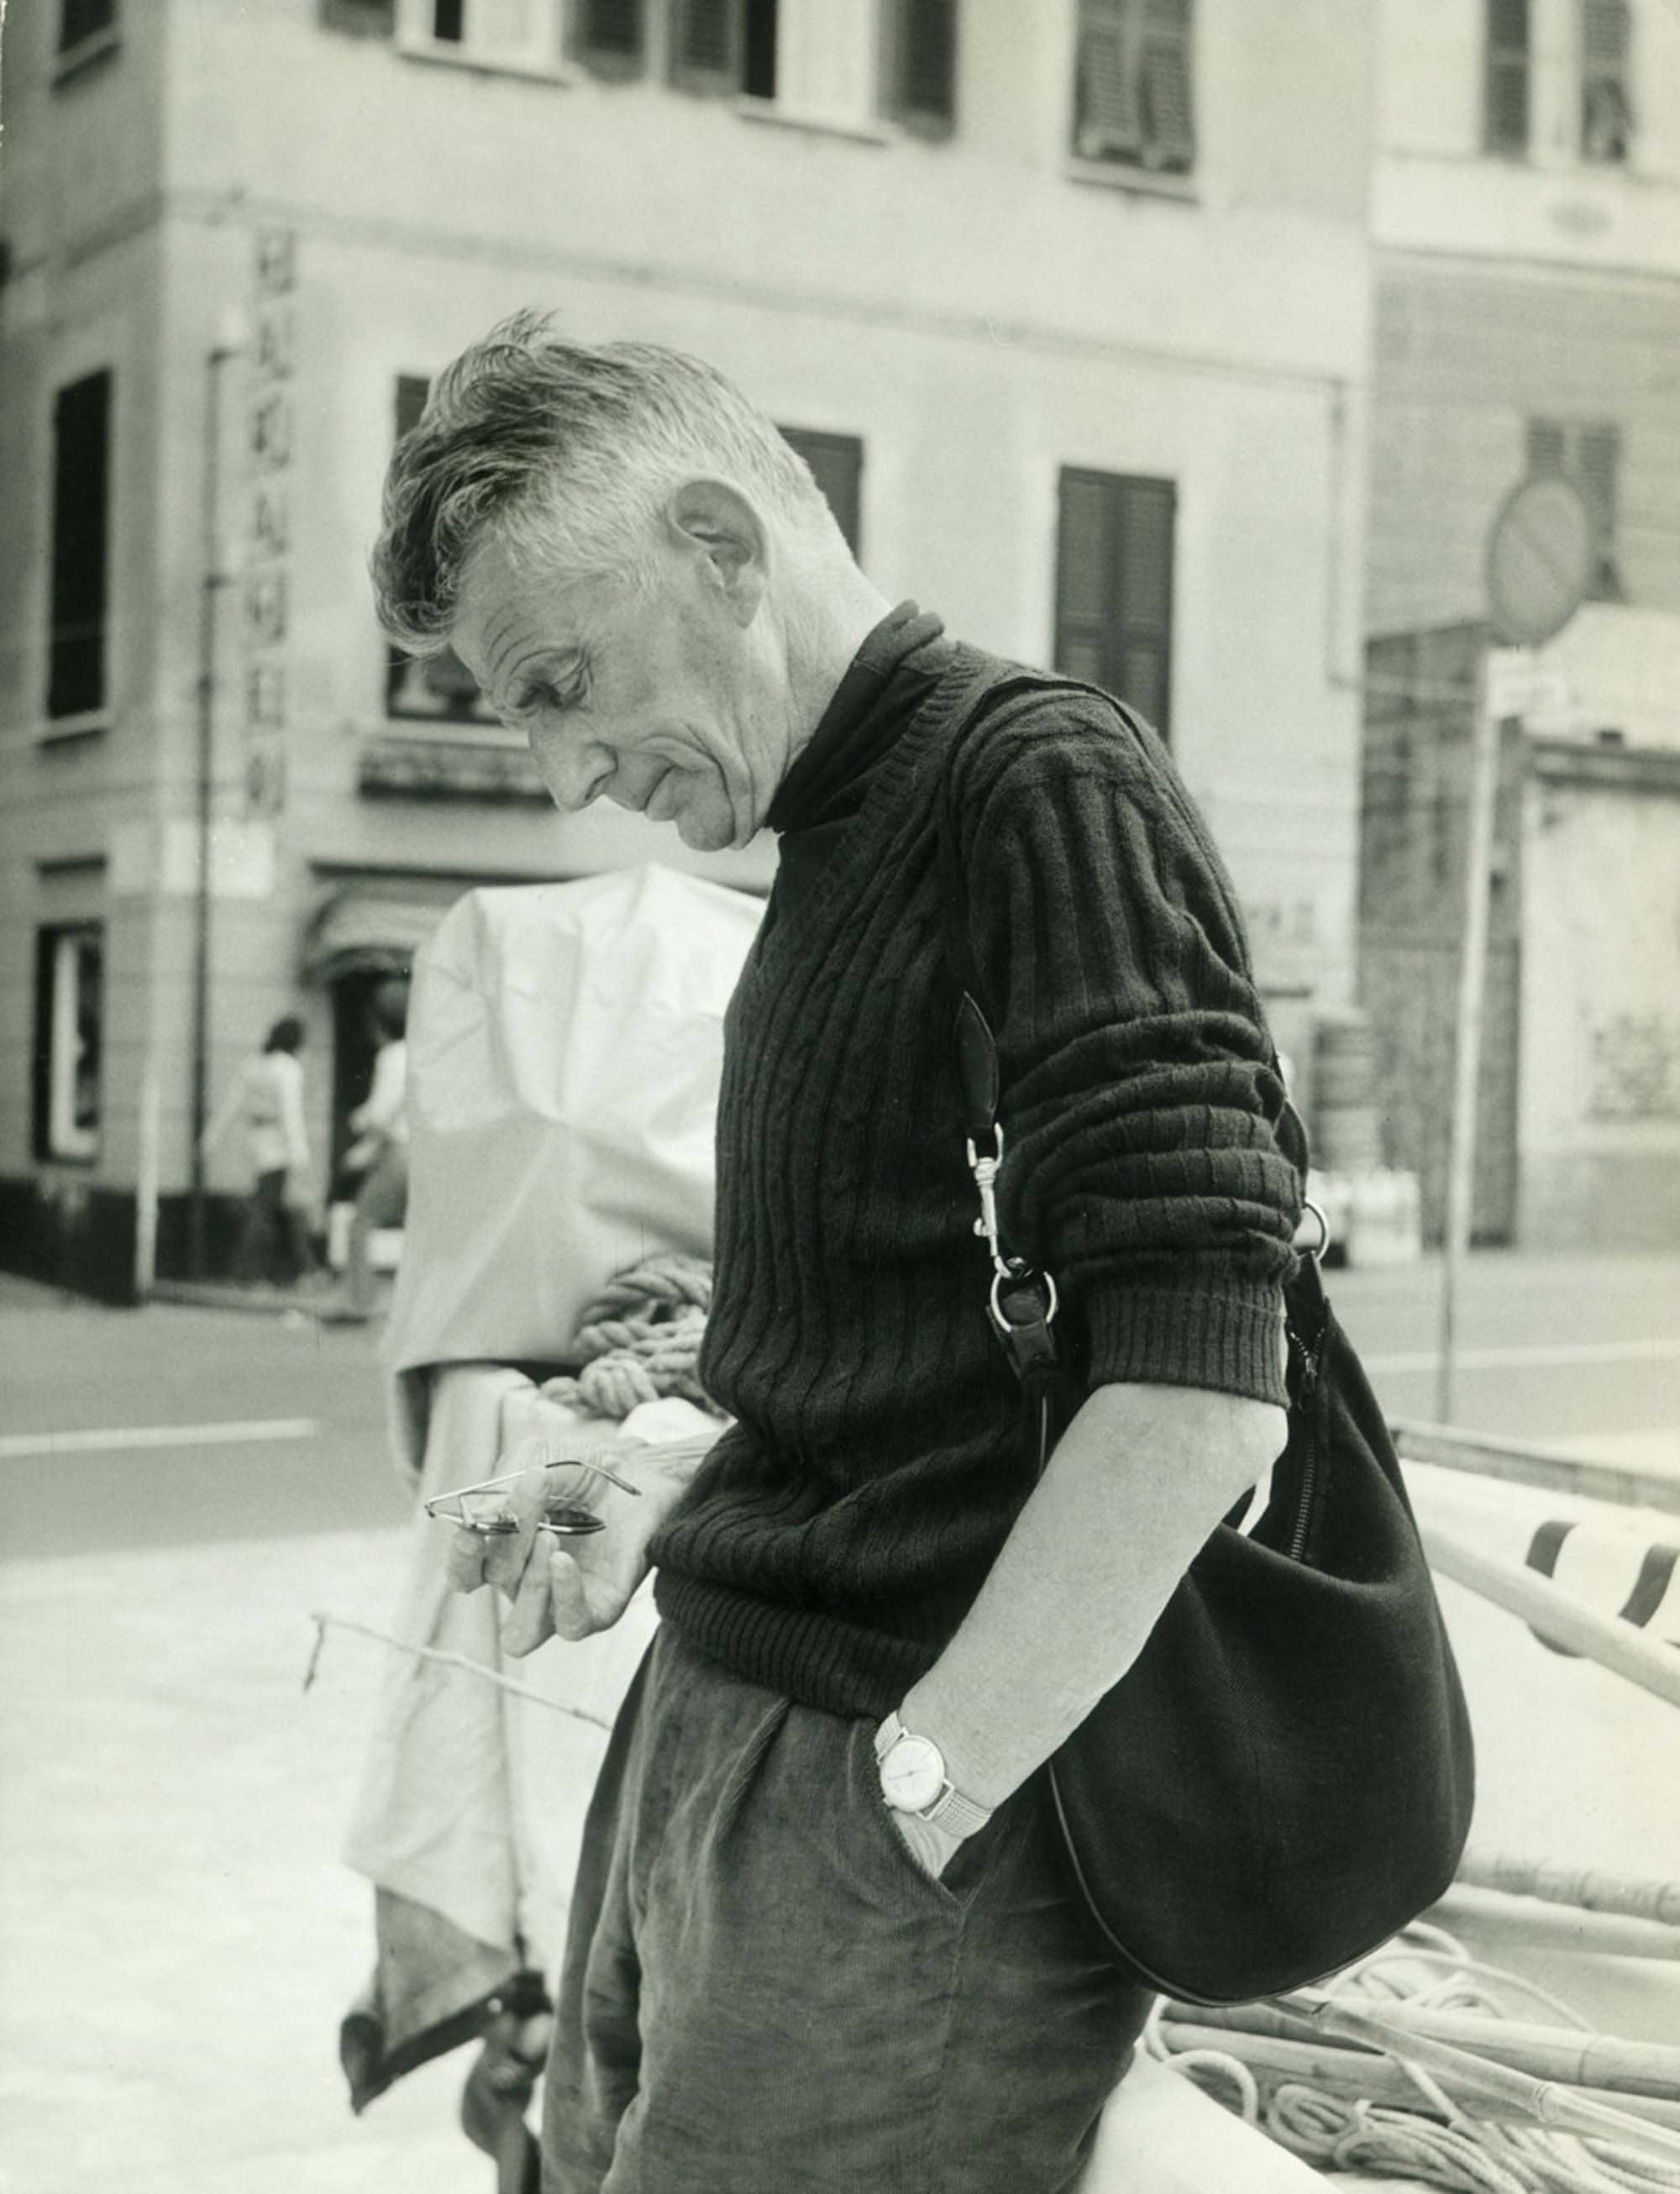 Samuel Beckett with his Gucci bag, 1971